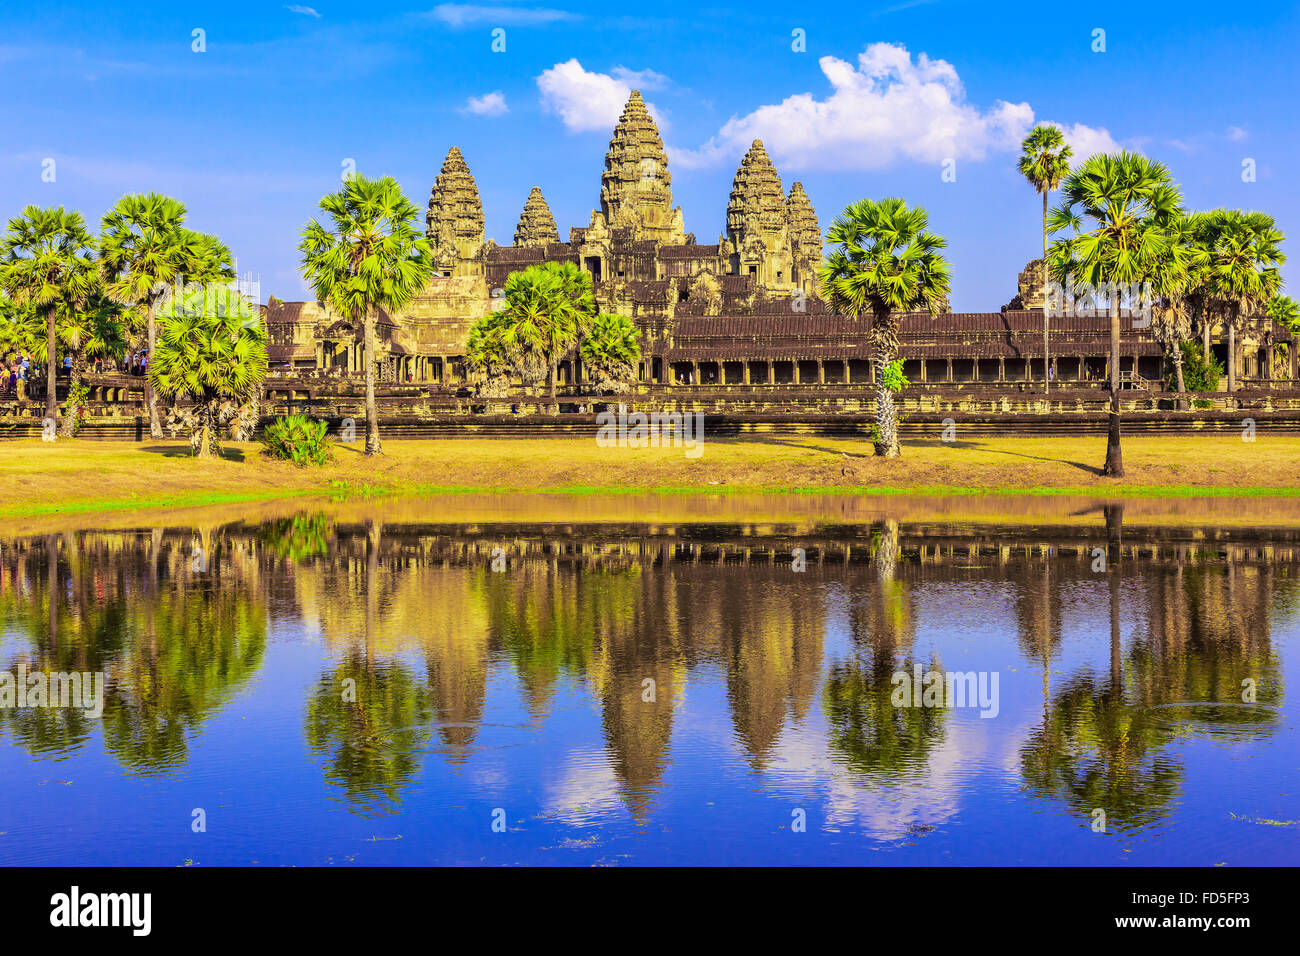 Angkor Wat, Siem Reap. Khmer temple in Cambodia. - Stock Image